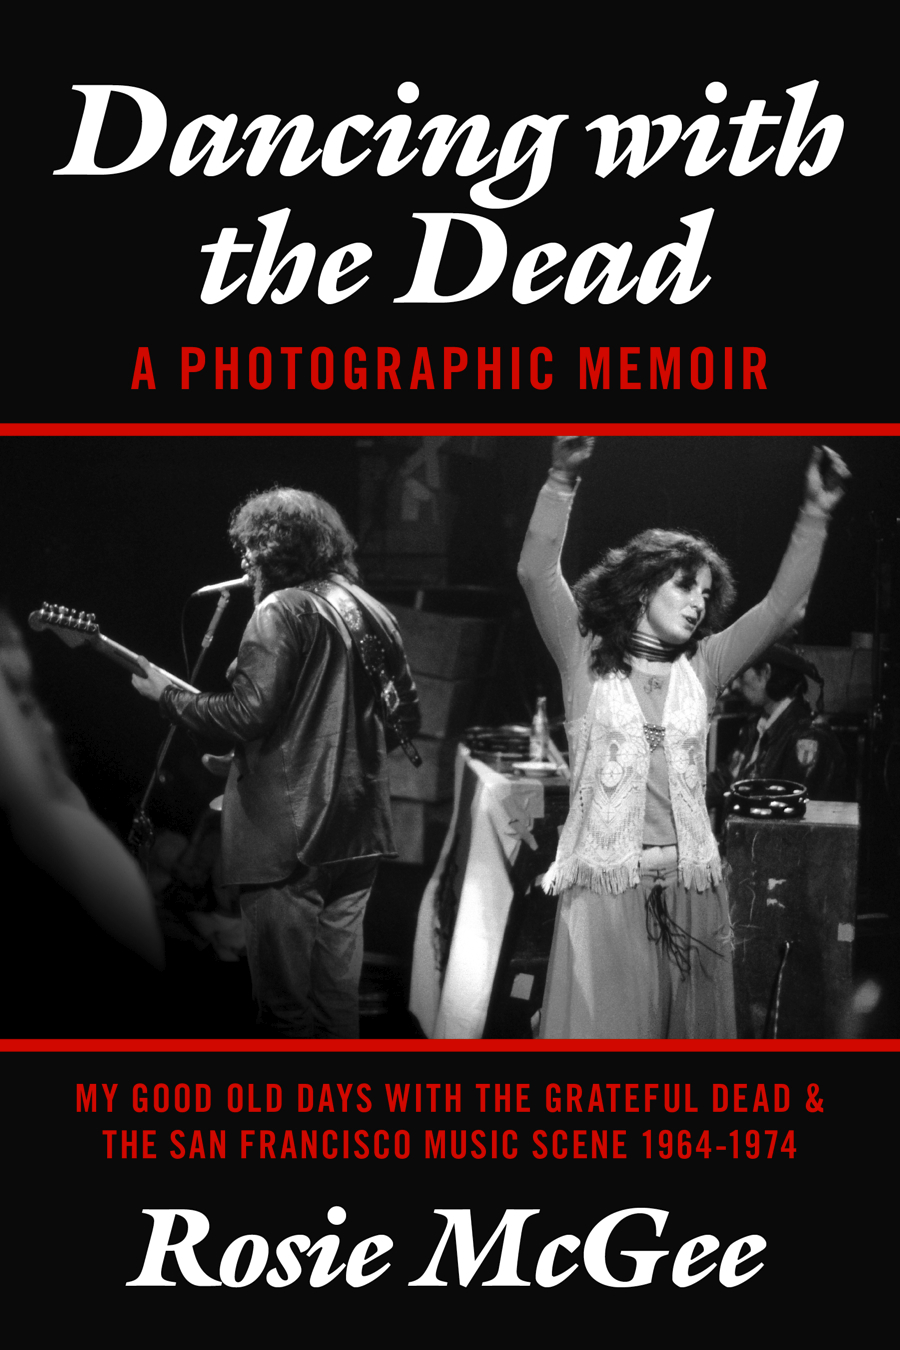 Dancing with the Dead--A Photographic Memoir: My Good Old Days with the Grateful Dead & the San Francisco Music Scene 1964-1974